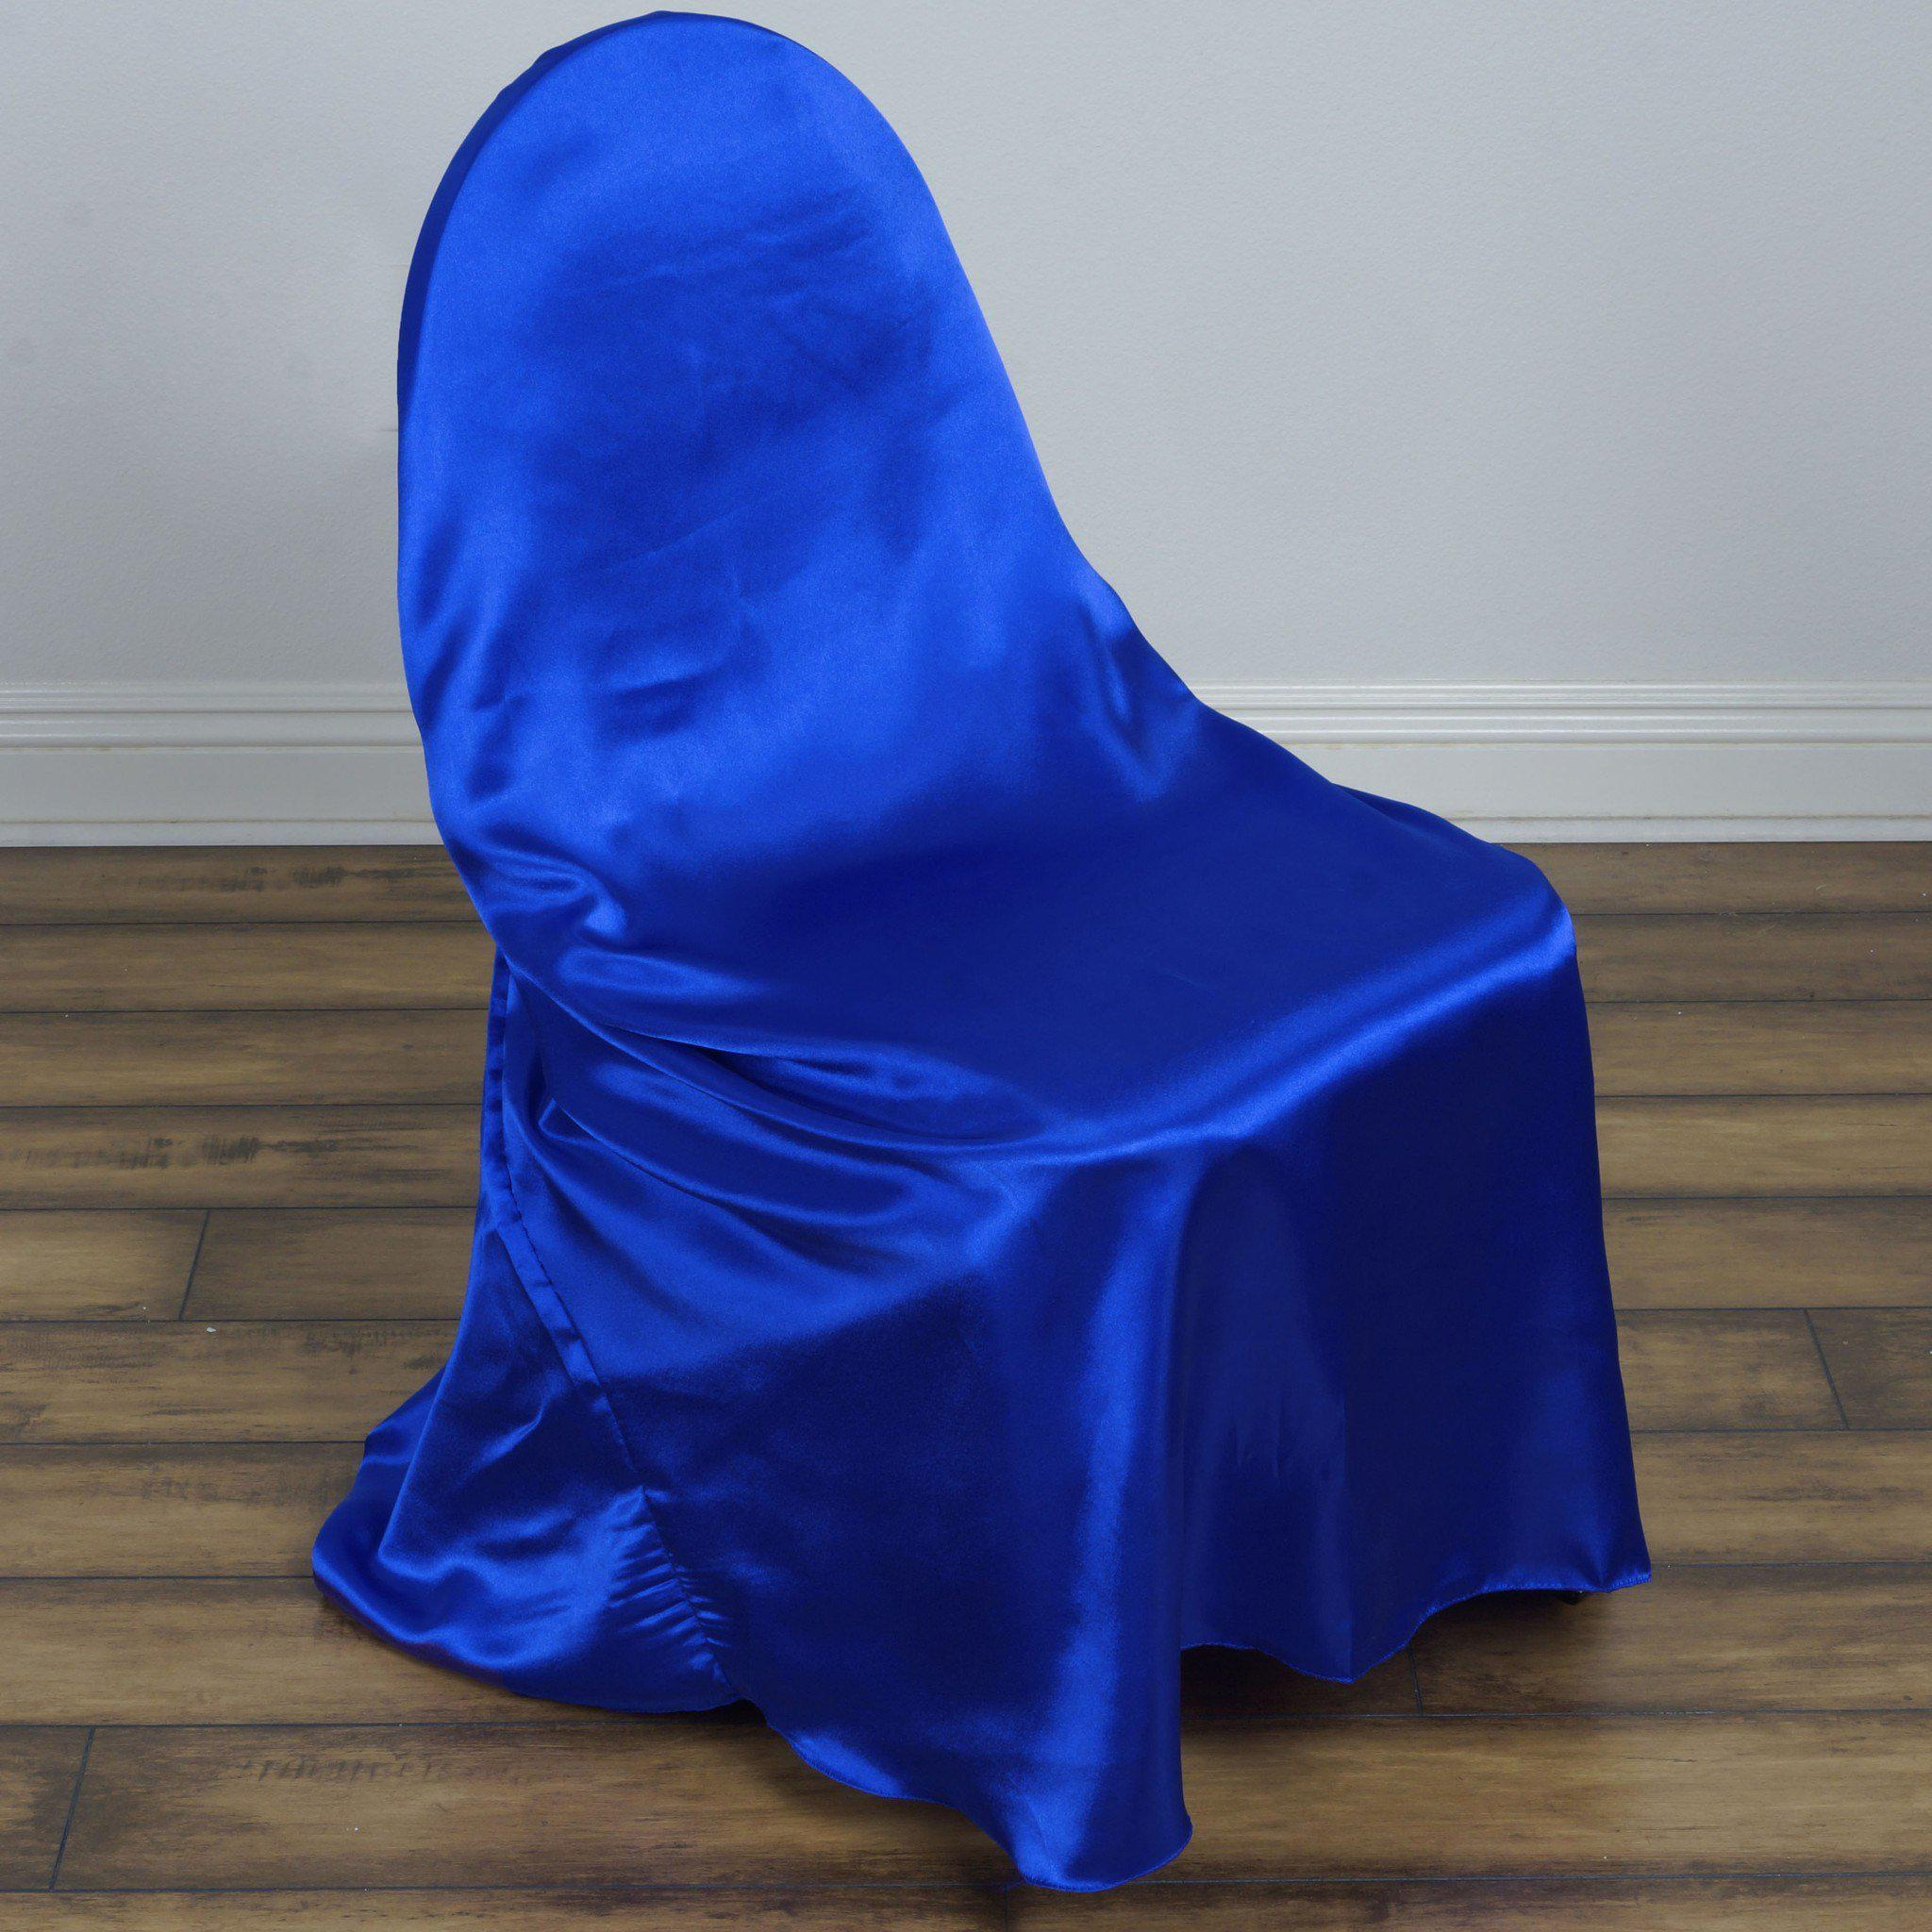 Genial Royal Blue Universal Satin Chair Cover ...